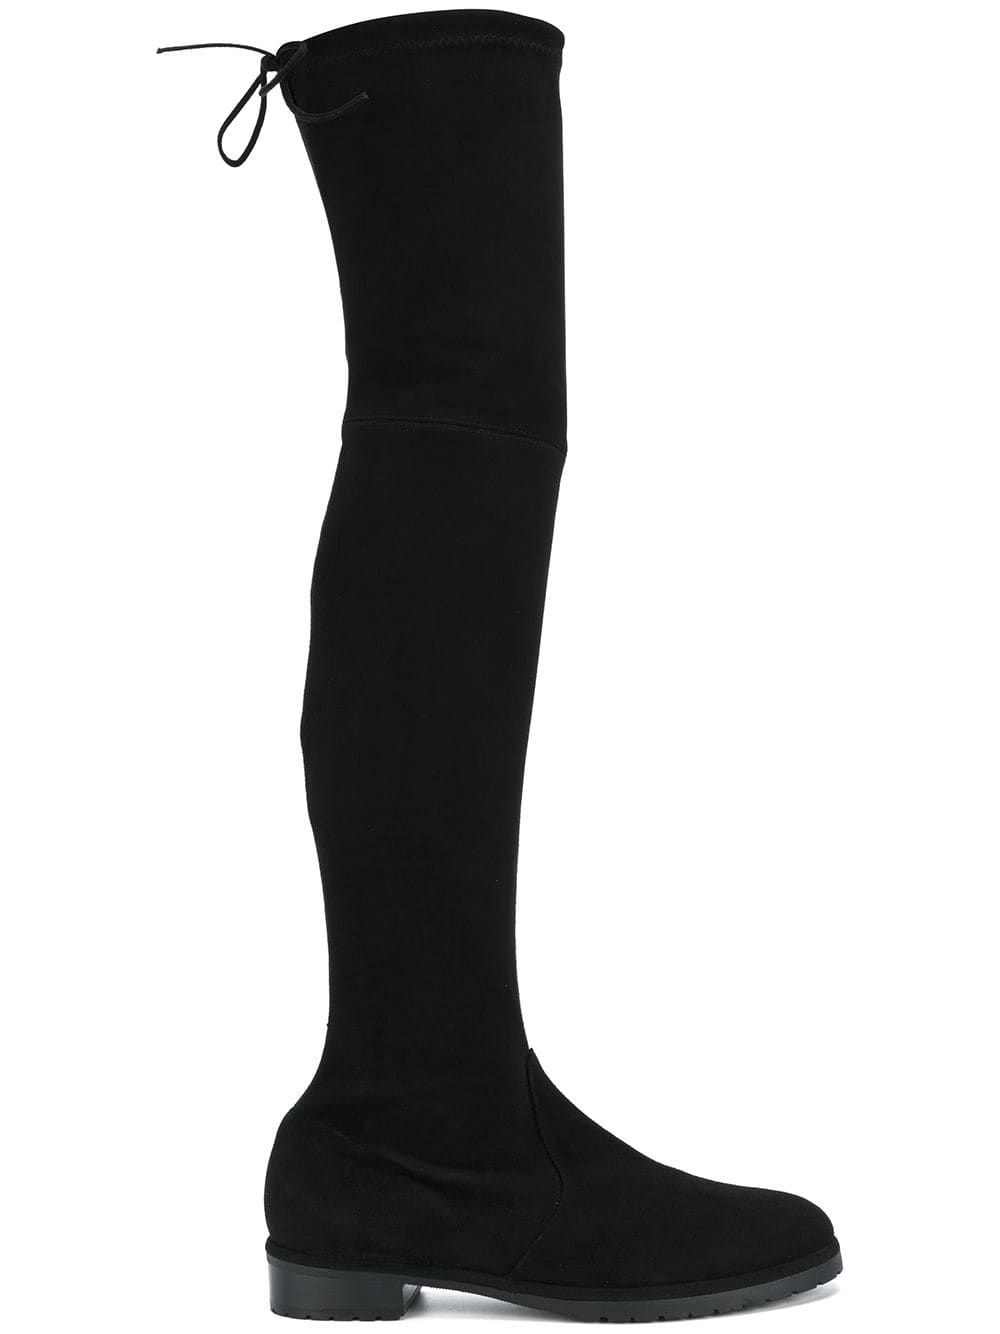 3989ab5a8 Baldinini thigh length boots - Black in 2019 | Products | Thigh ...